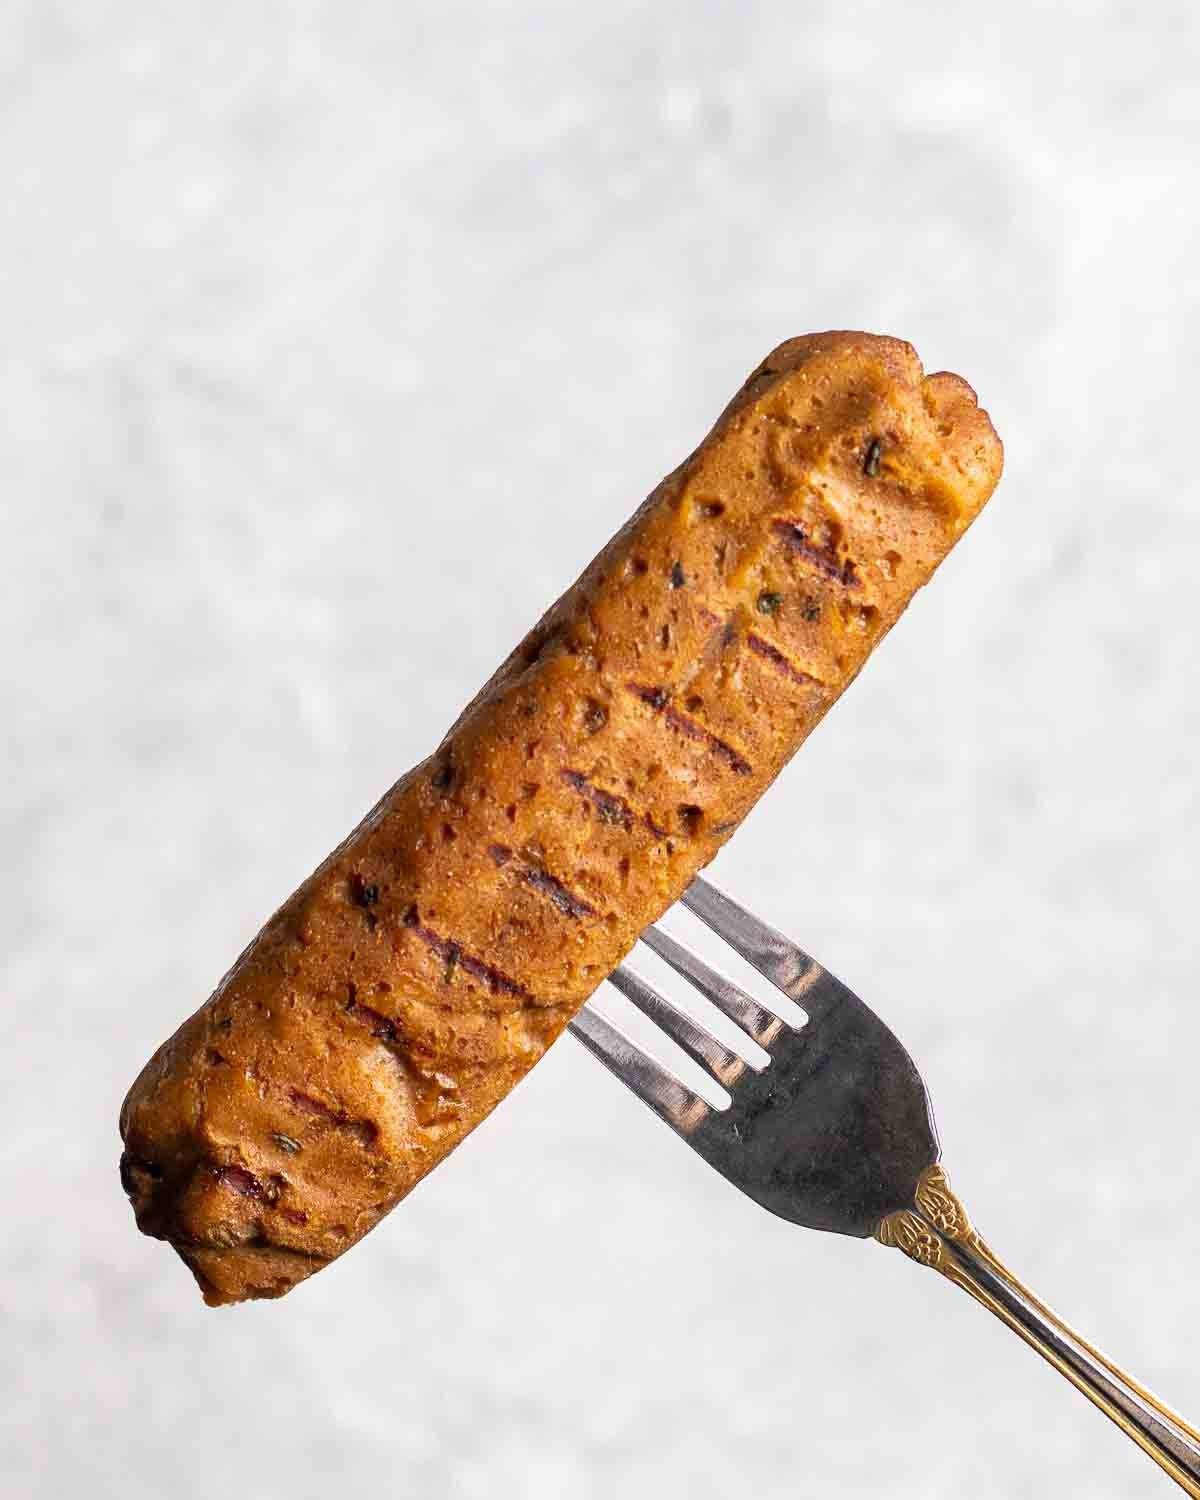 Fork holding a vegan Italian sausage on a grey background.